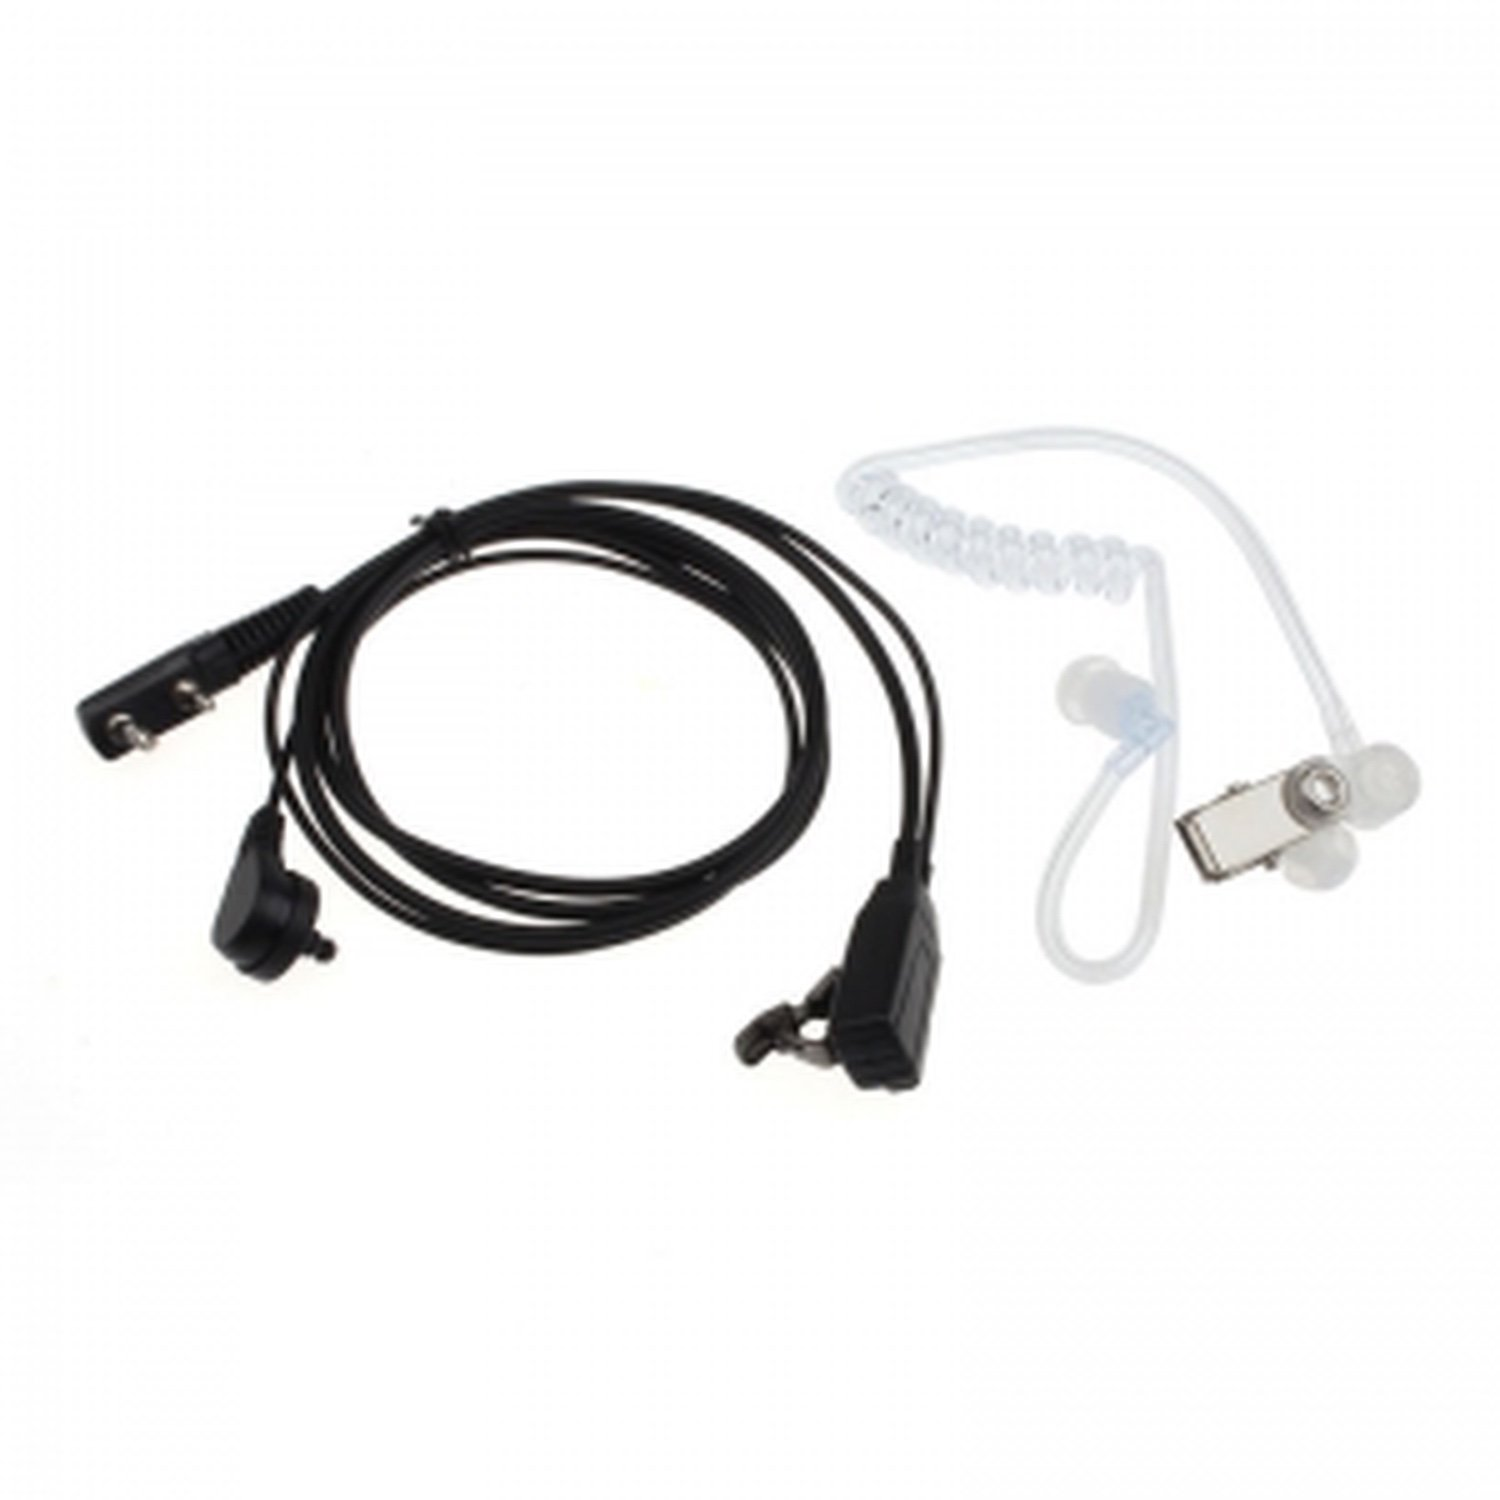 Transparent Pinganillo Earphone For Walkie Talkie Baofeng BF-888S And UV5R